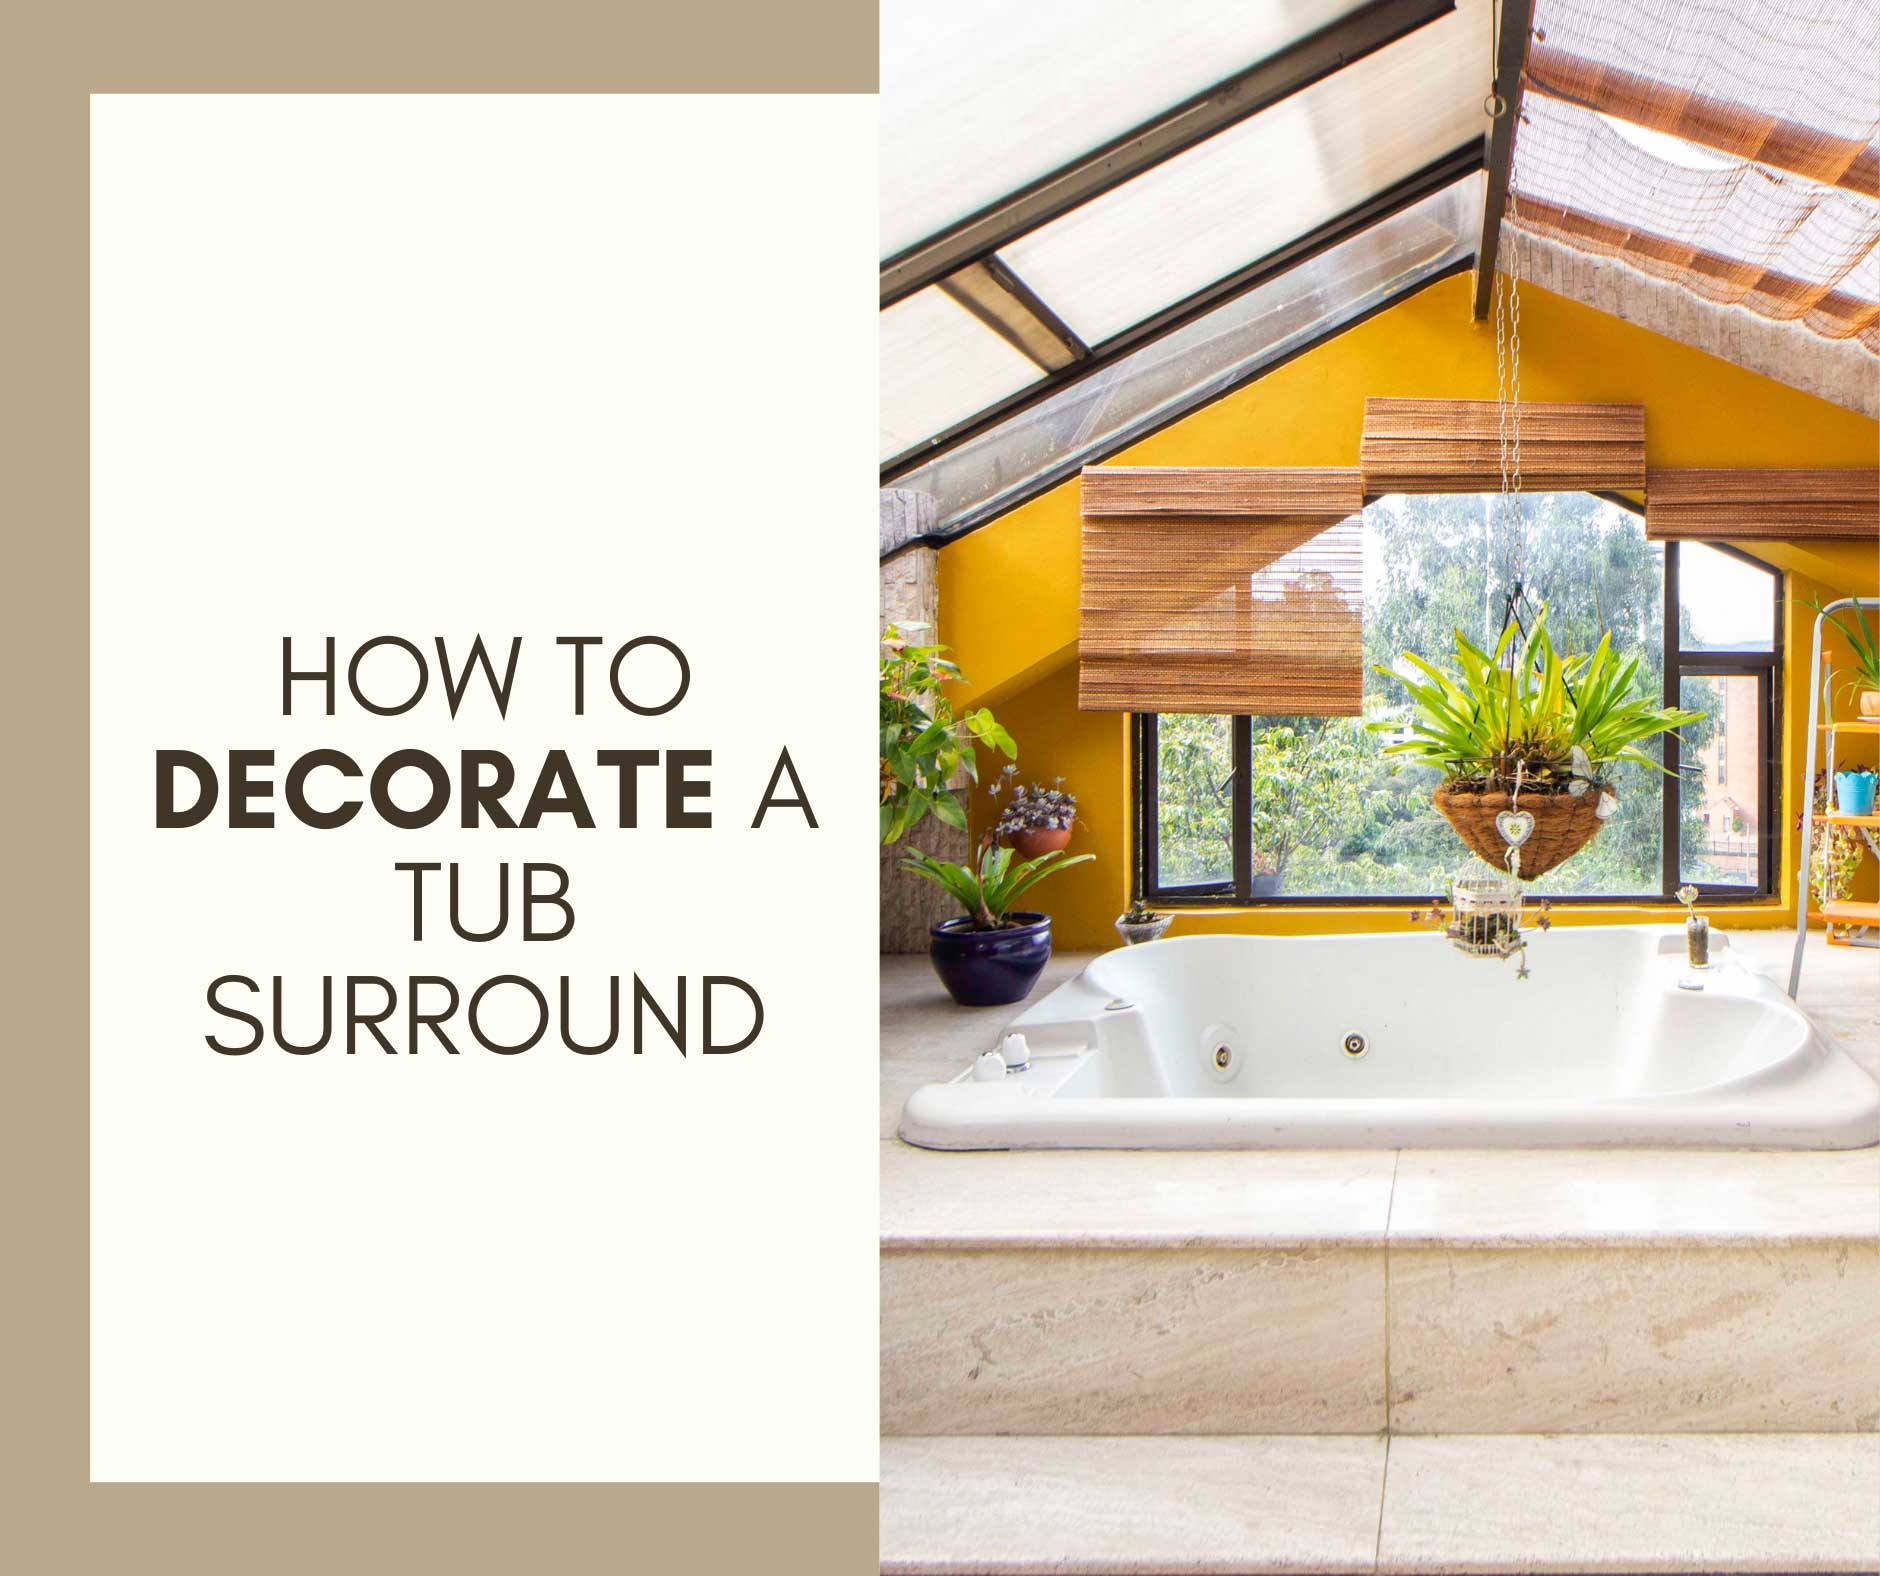 How to Decorate a Tub Surround